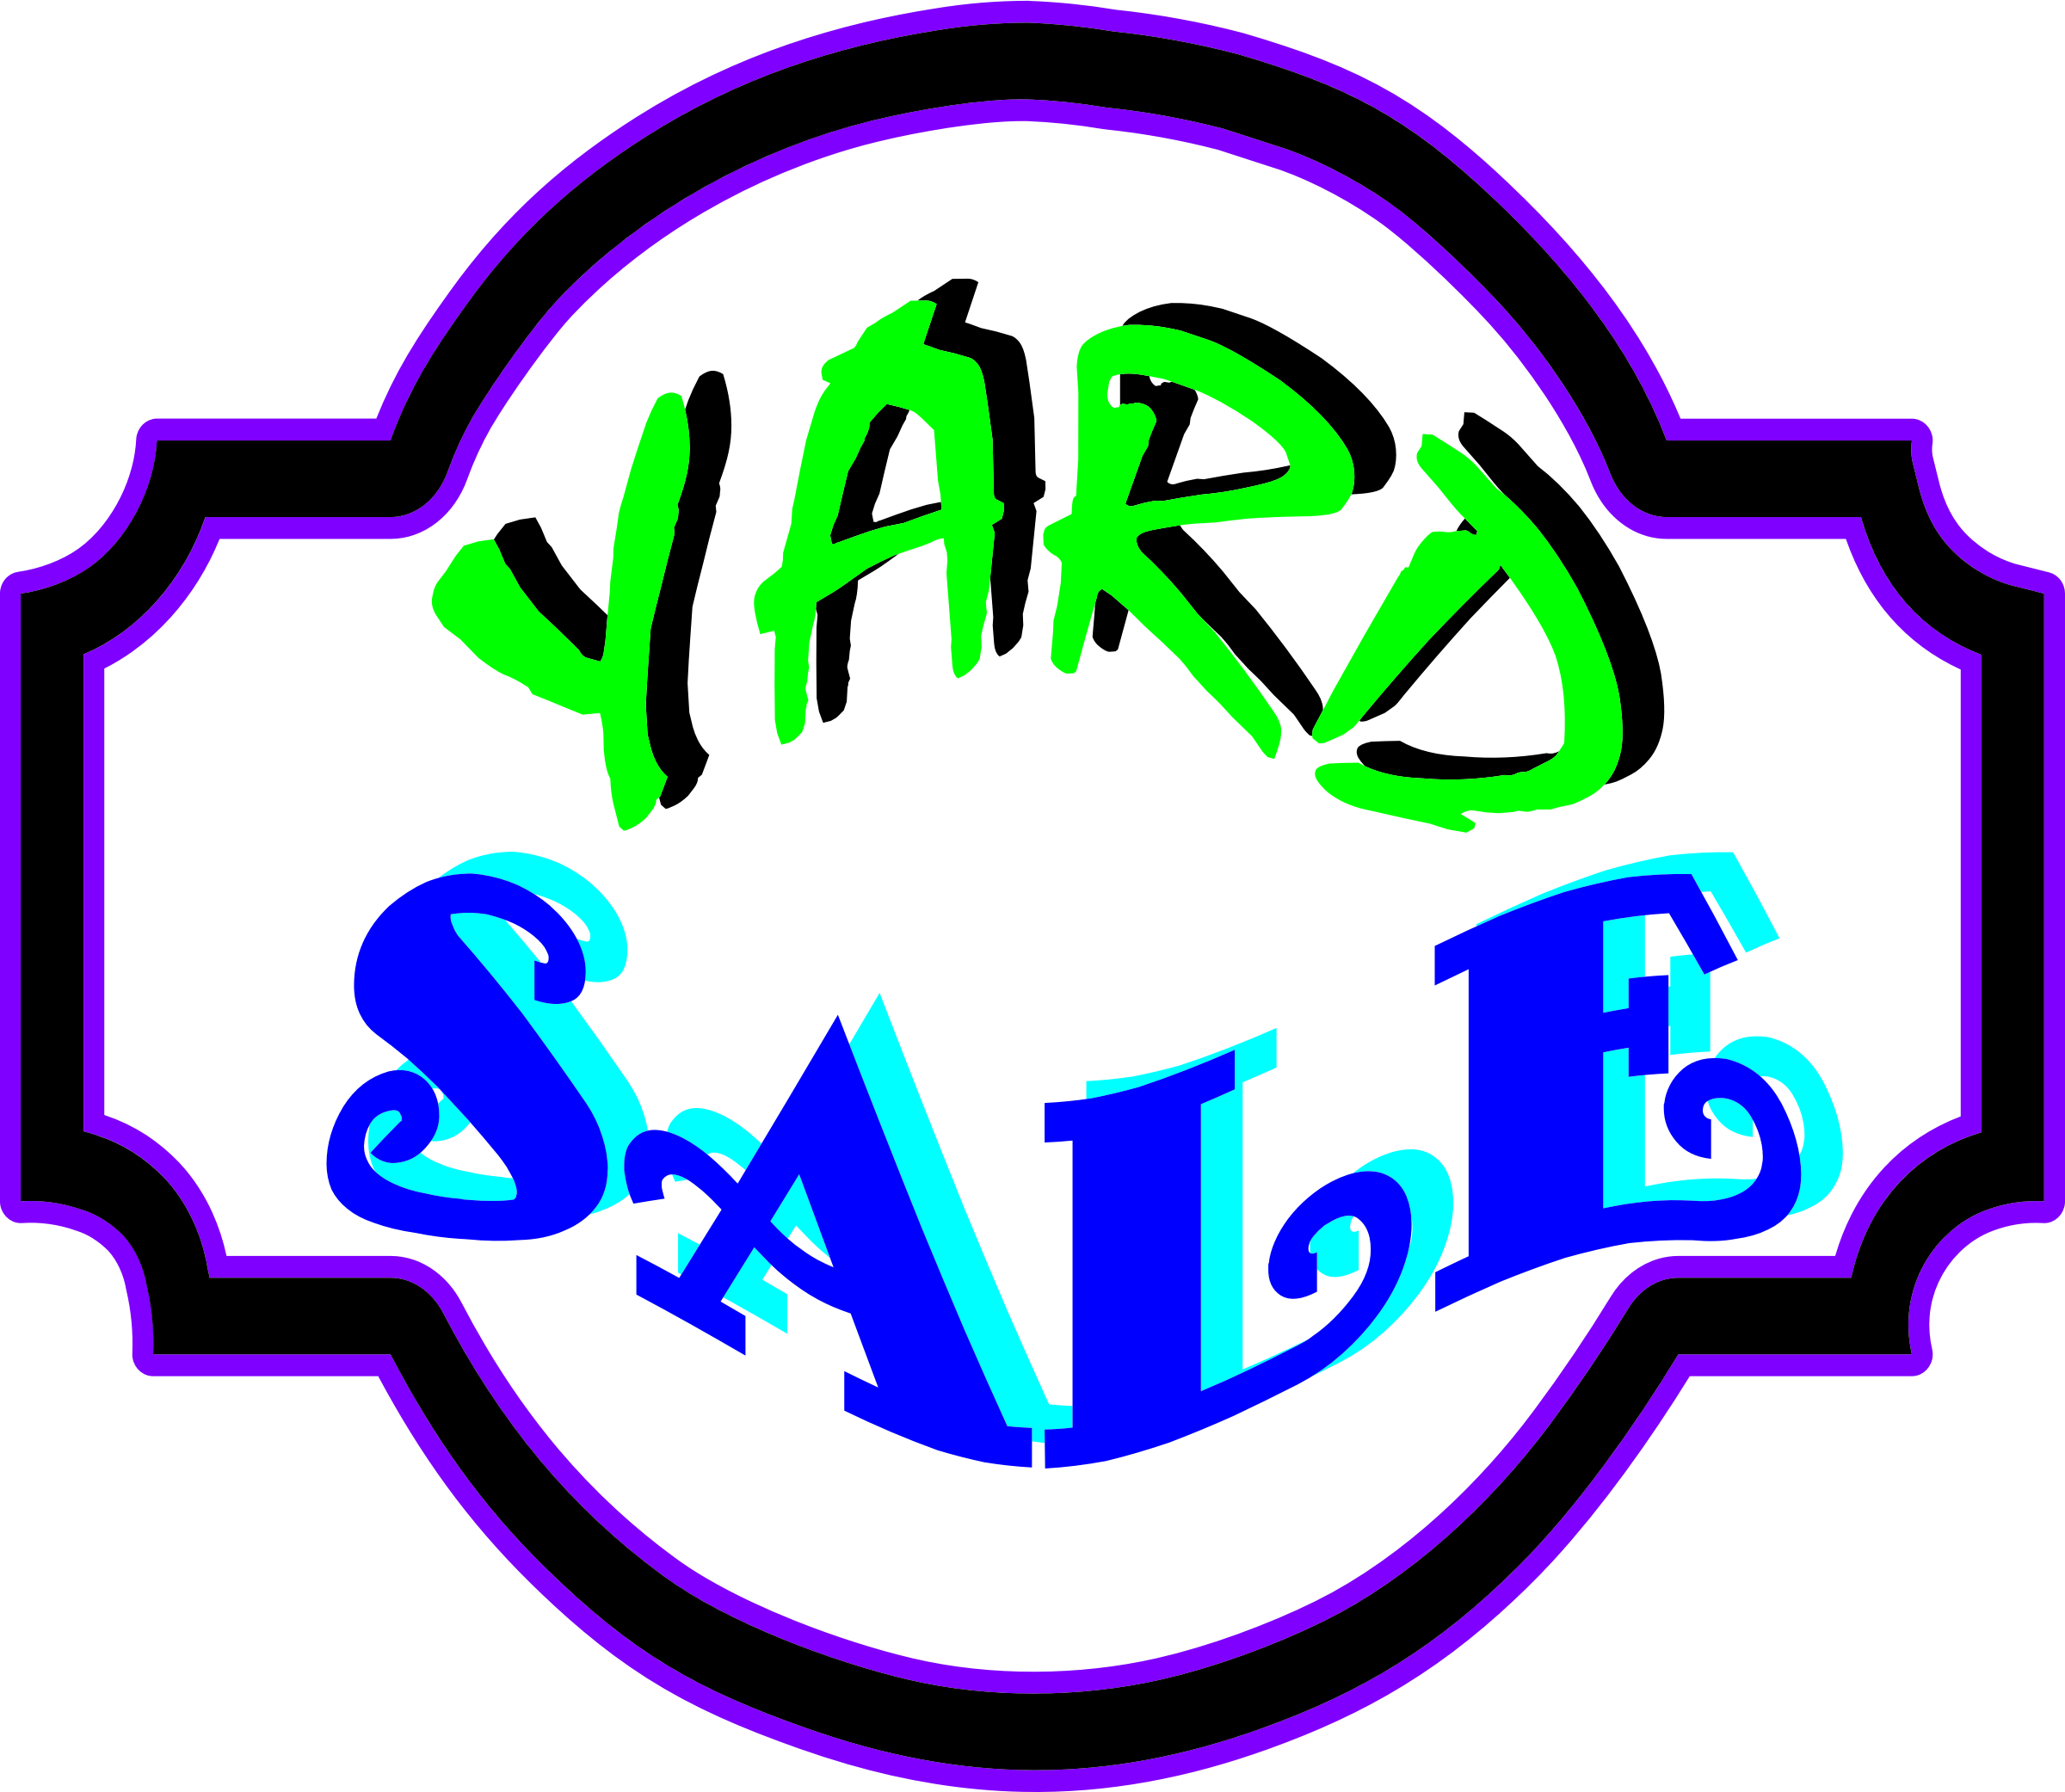 2400x2083 Free Png Yard Sale Sign Transparent Yard Sale Sign.png Images